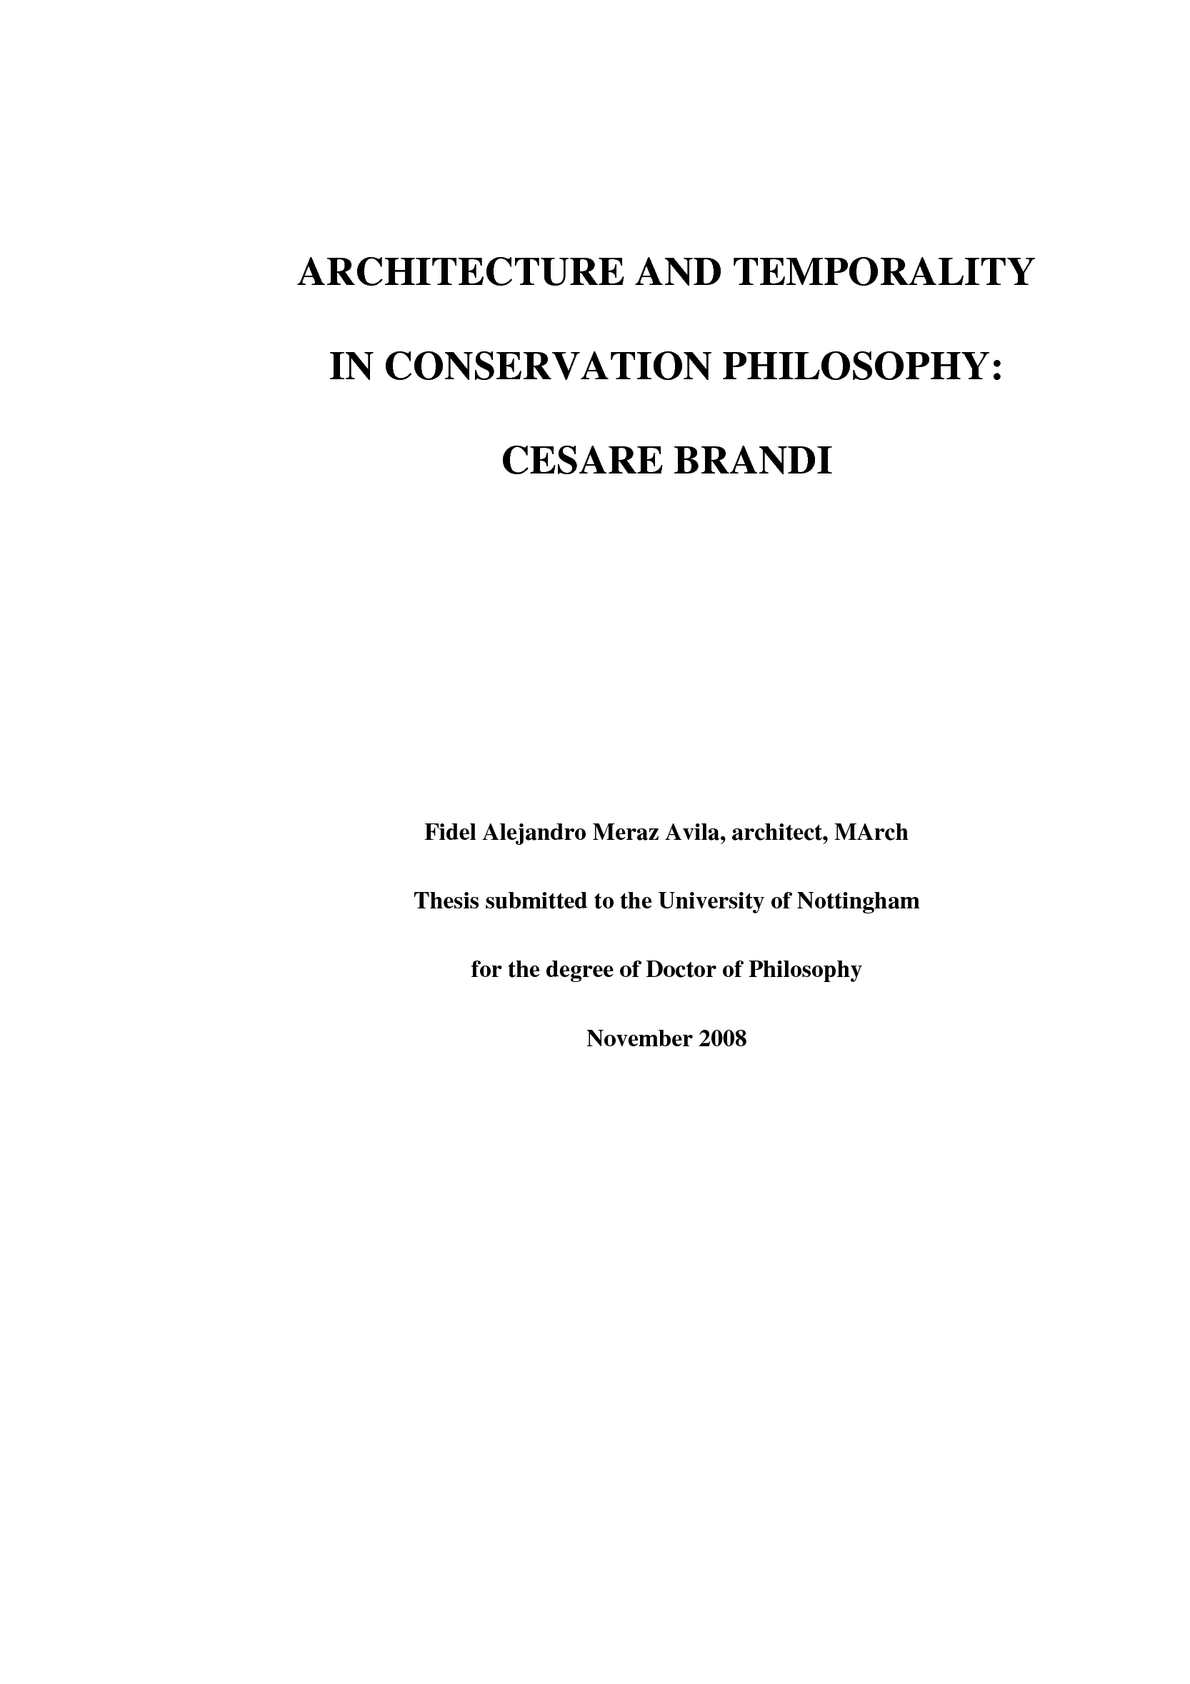 Calameo Meraz F A Architecture And Temporality In Conservation Philosophy Cesare Brandi 2008